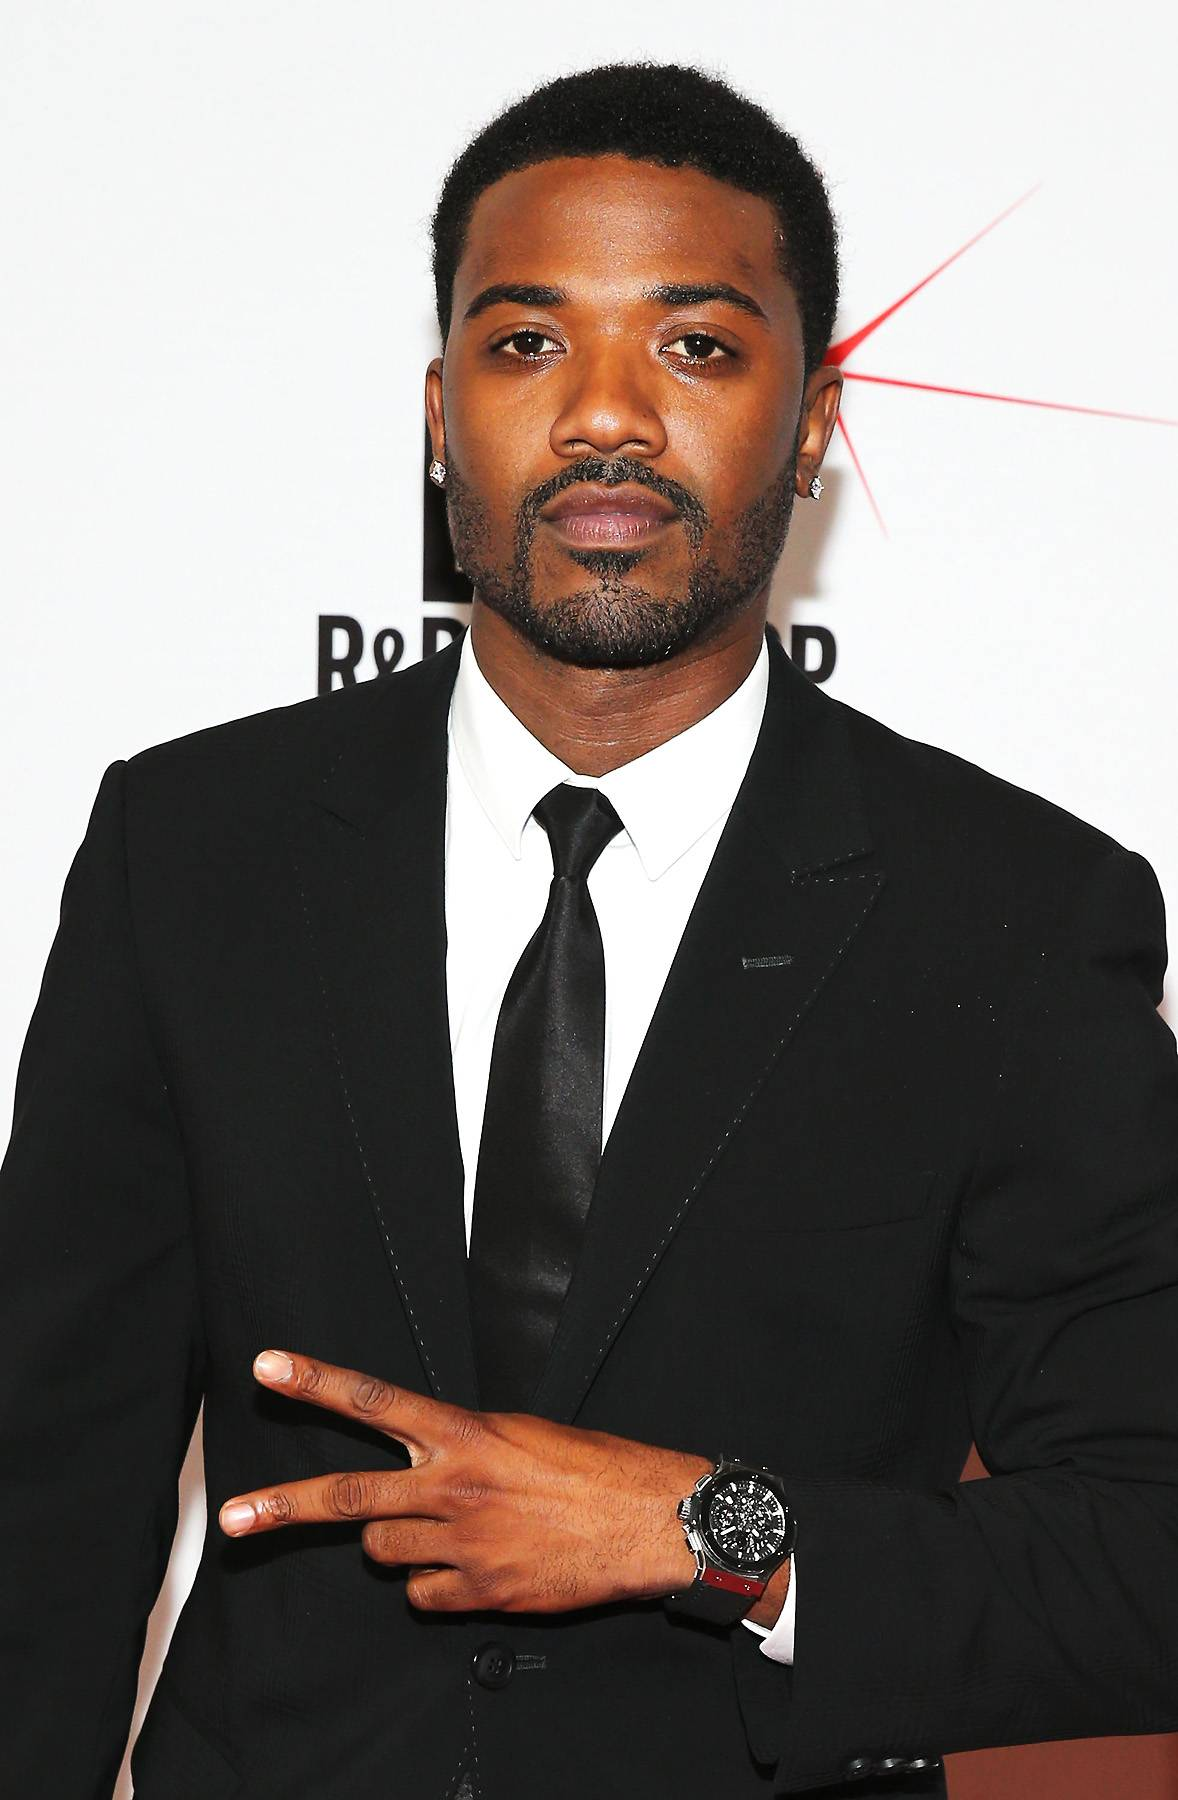 """Ray J, @RayJ - Tweet: """"We All Have #NeverShouldaDidThat Moments!!!""""Ray Jkicks off a new hashtag campaign with his latest video, """"Never Shoulda Did That."""" #MaybeHeWasTalkingAboutThatSong(Photo: Neilson Barnard/Getty Images for BMI)"""